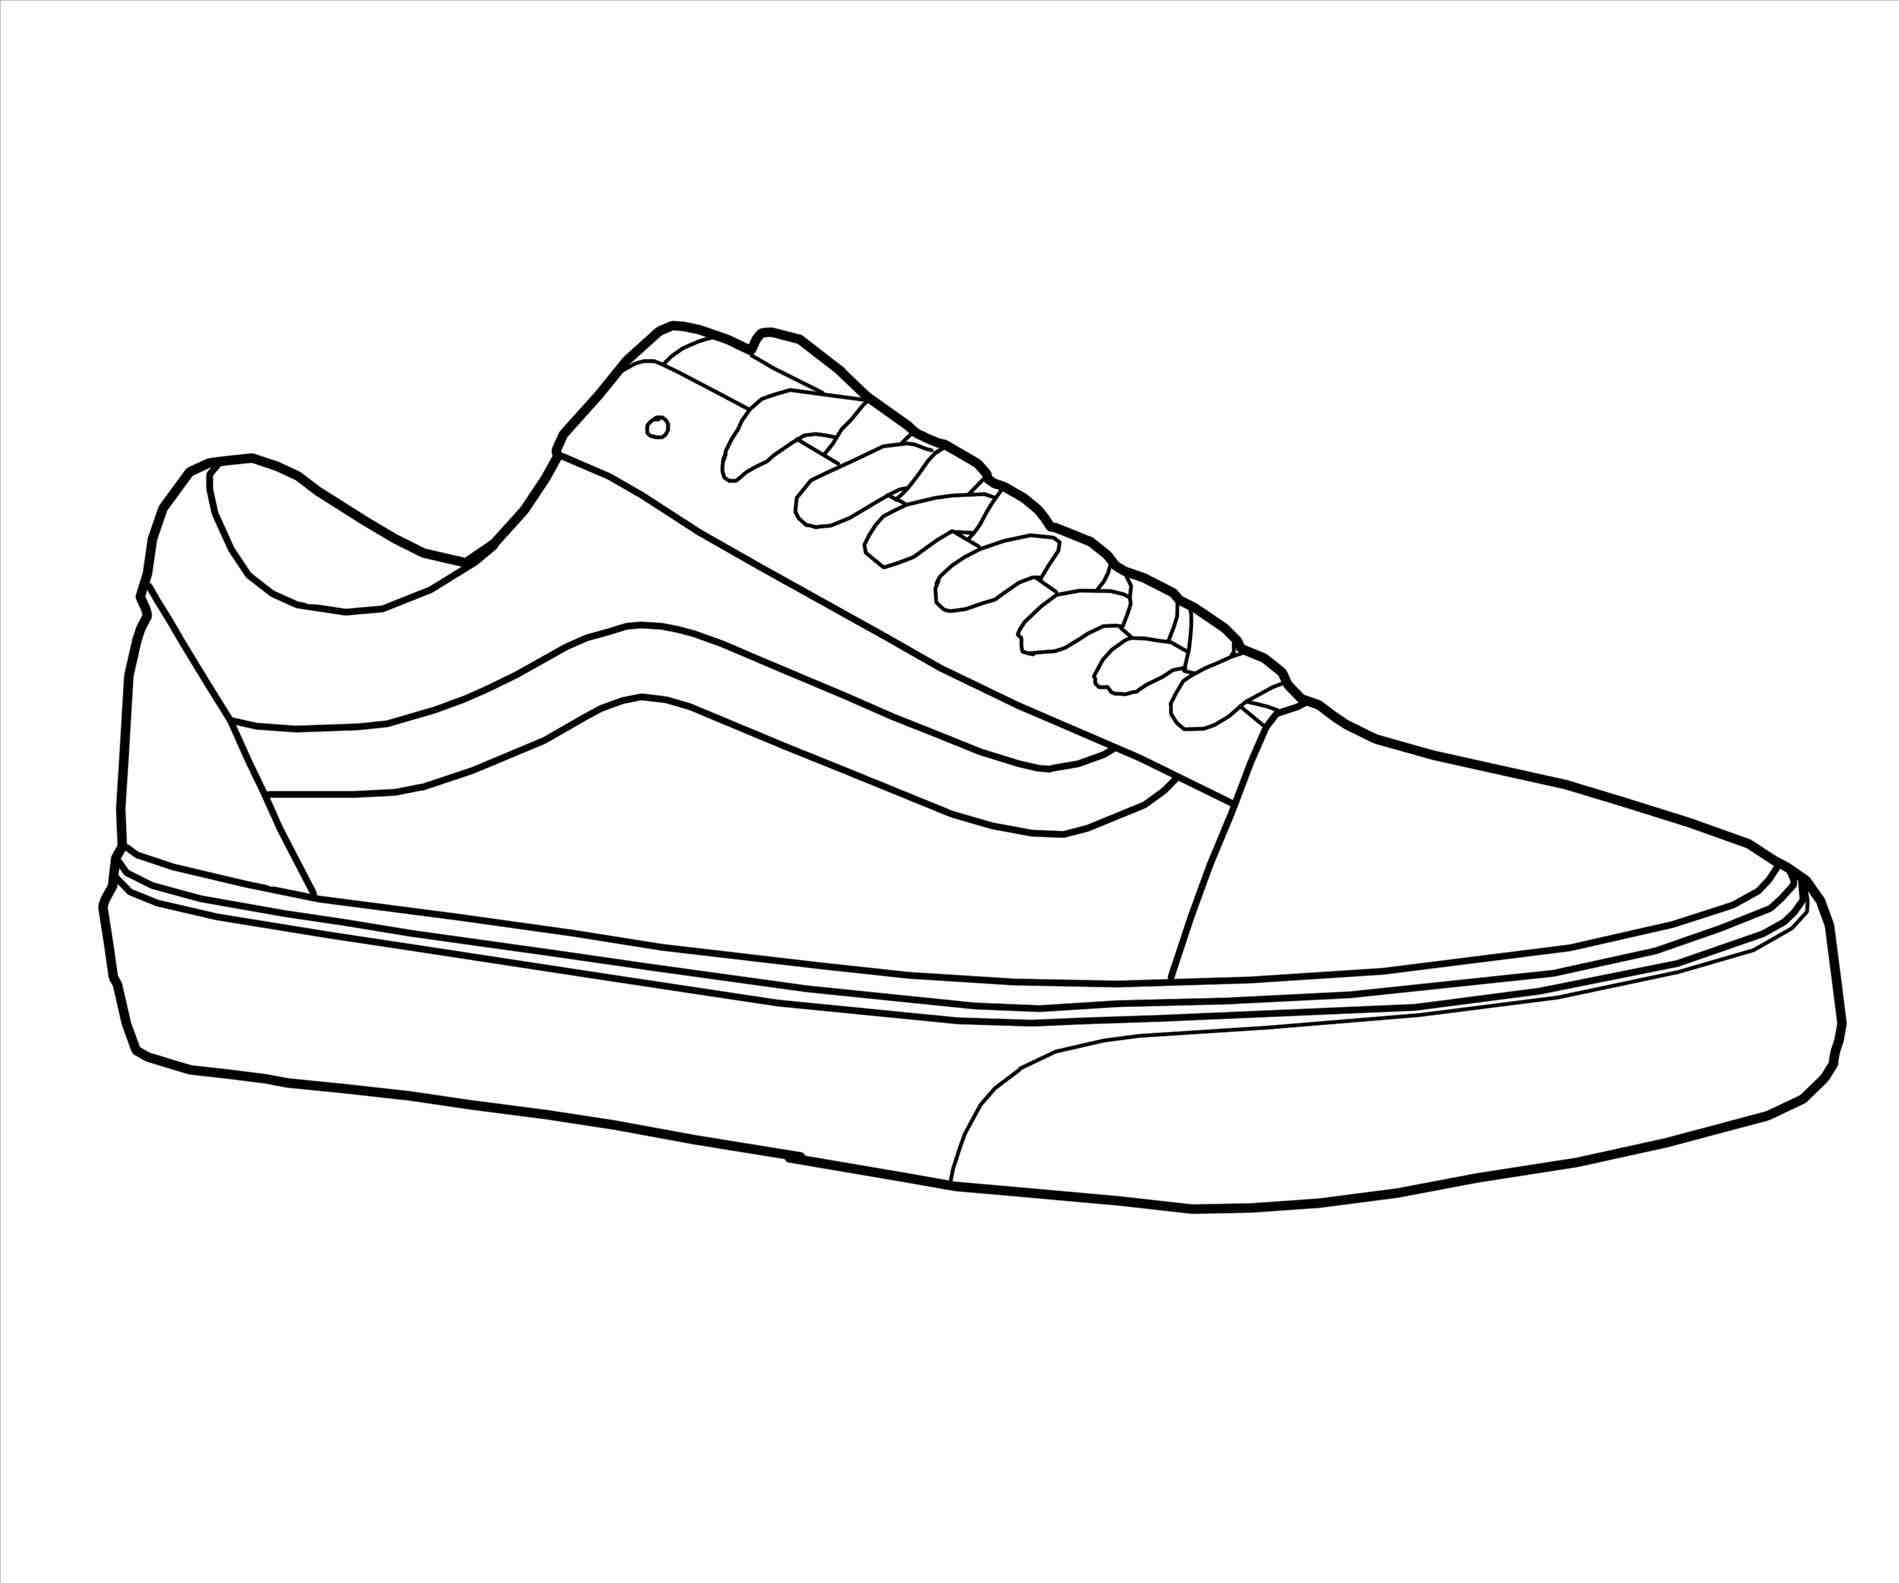 coloring school shoes undead labs shoe templatejpg 1193627 design your own shoes school coloring